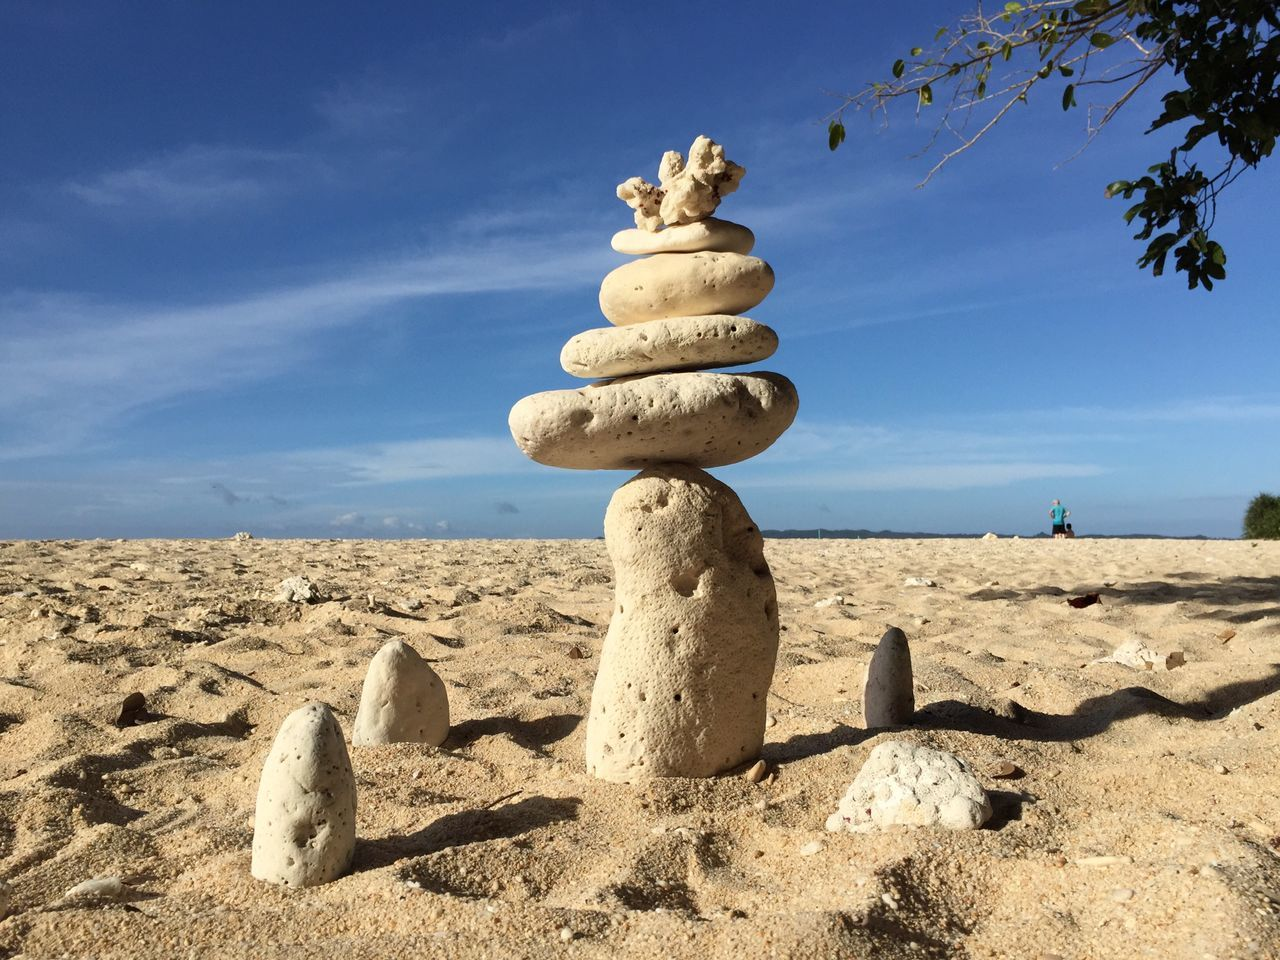 Sand Beach Sunlight Sky Shore Cloud - Sky Tranquility Blue Sandy In A Row Tranquil Scene Non-urban Scene Tourism Summer Zoology Nature Sunny Pebble Day Outdoors Coral Sculpture Sculptures By The Sea